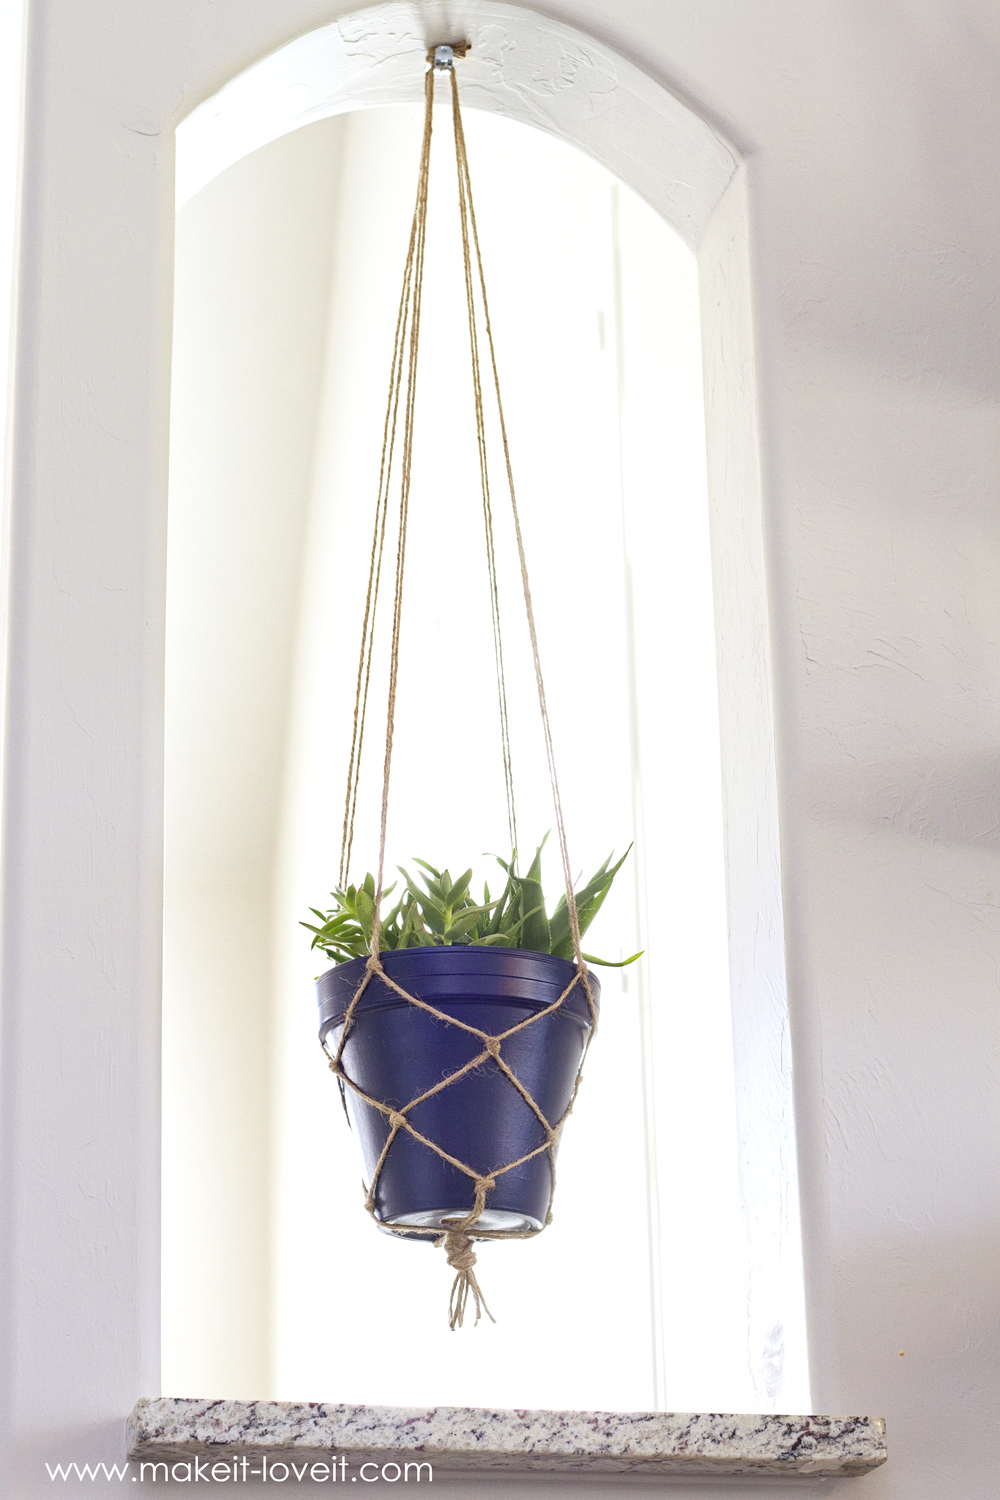 Find a strong, weather-resistant cord to make your plant holder. Macramé cord, nylon clothesline and jute are all able to support the weight of a plant and resist wear from rain, snow and ice. To wash your plant hanger, soak it in a bucket of warm water and 1 tbsp of mild detergent.